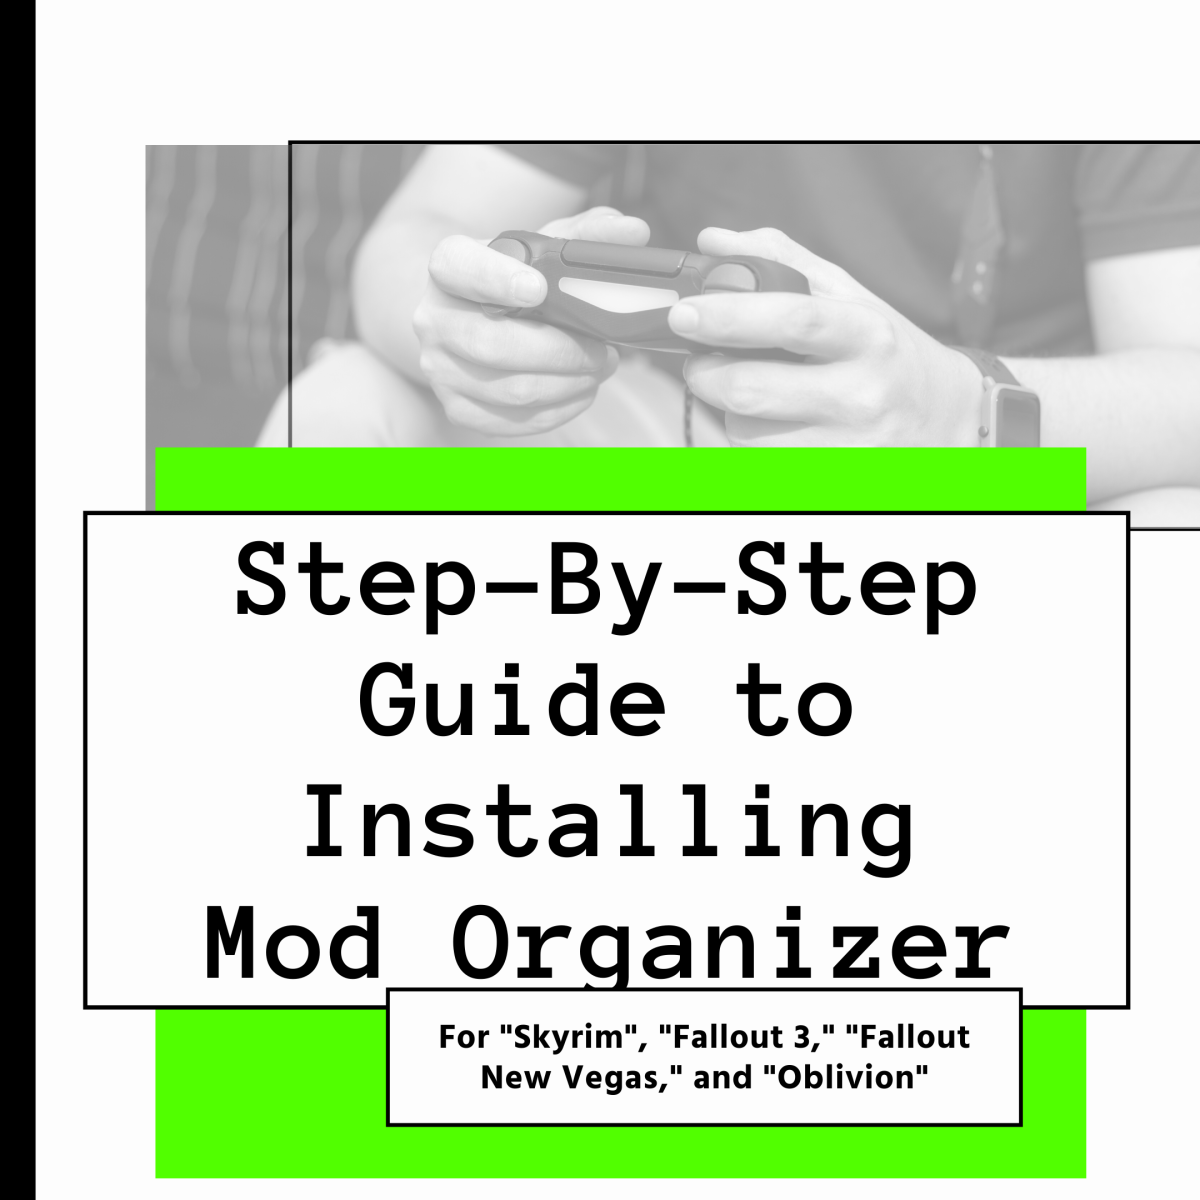 How to Install and Configure Mod Organizer for